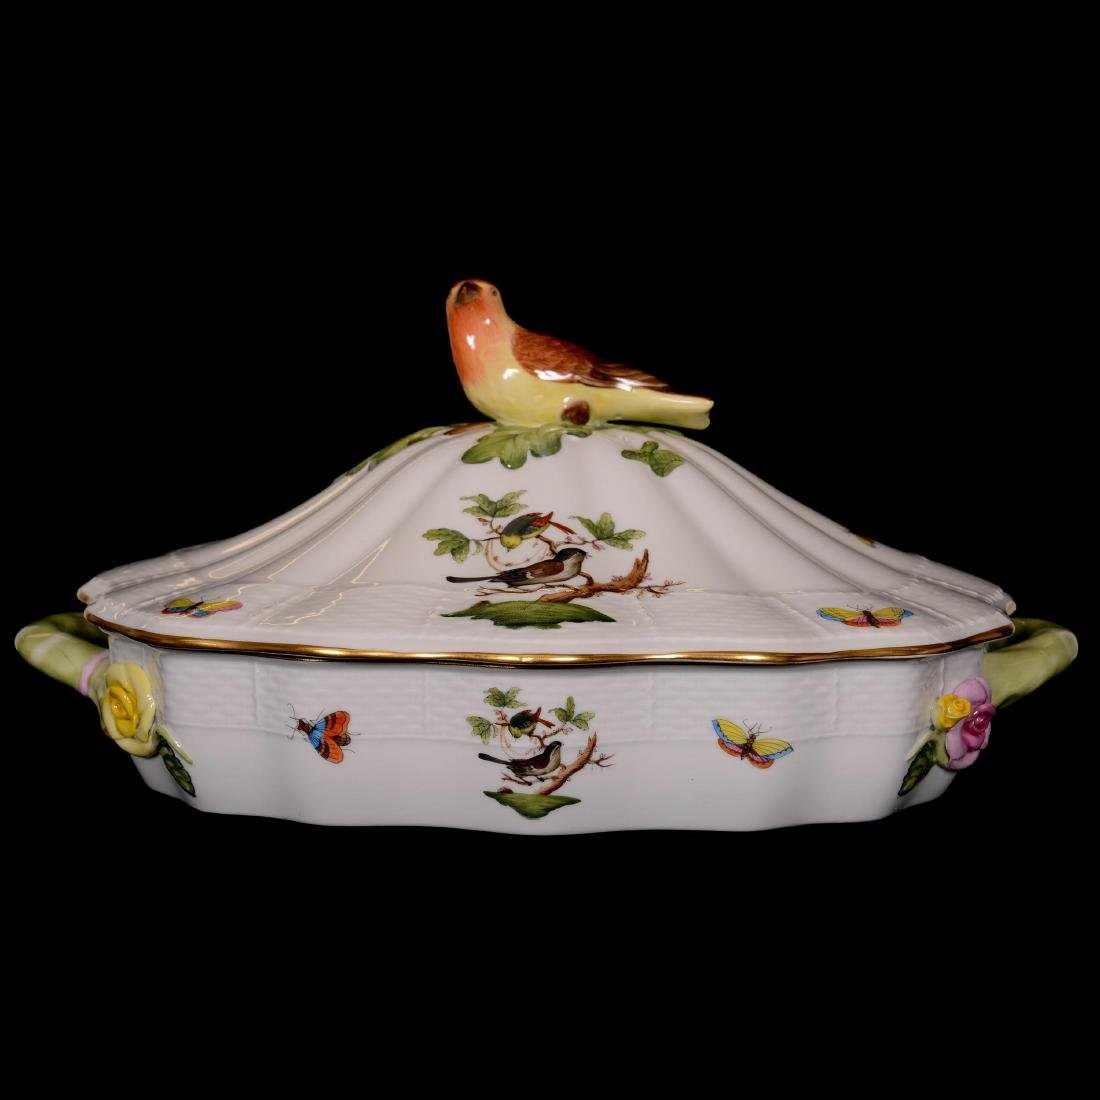 Herend Hungary Porcelain Hand Painted Covered Casserole